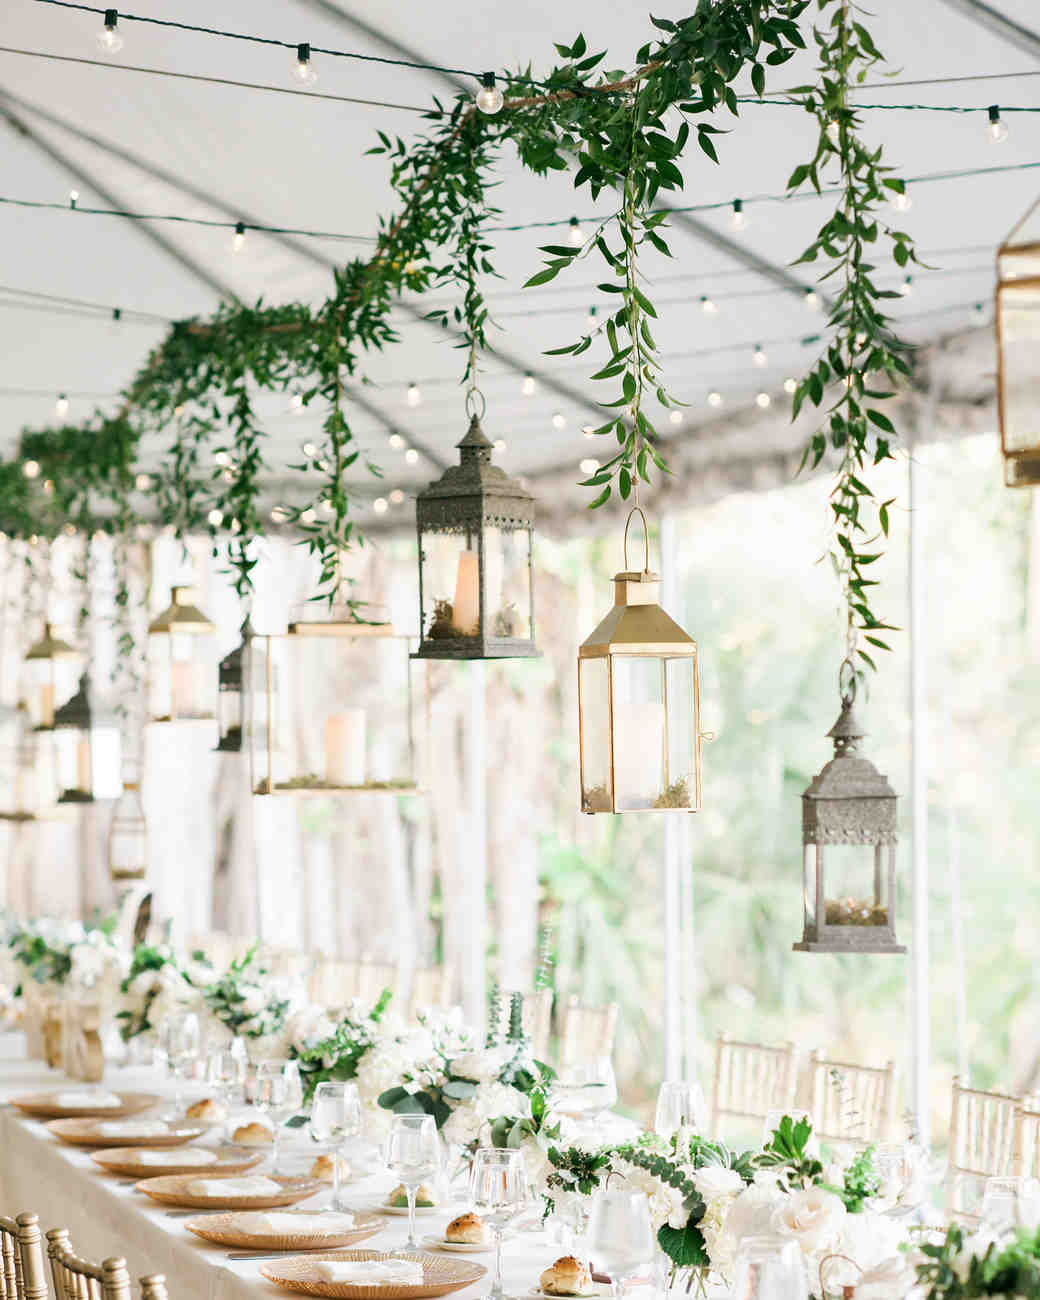 Watch 9 IDEAS FOR UNIQUE (AND EASY) WEDDING CENTERPIECES video